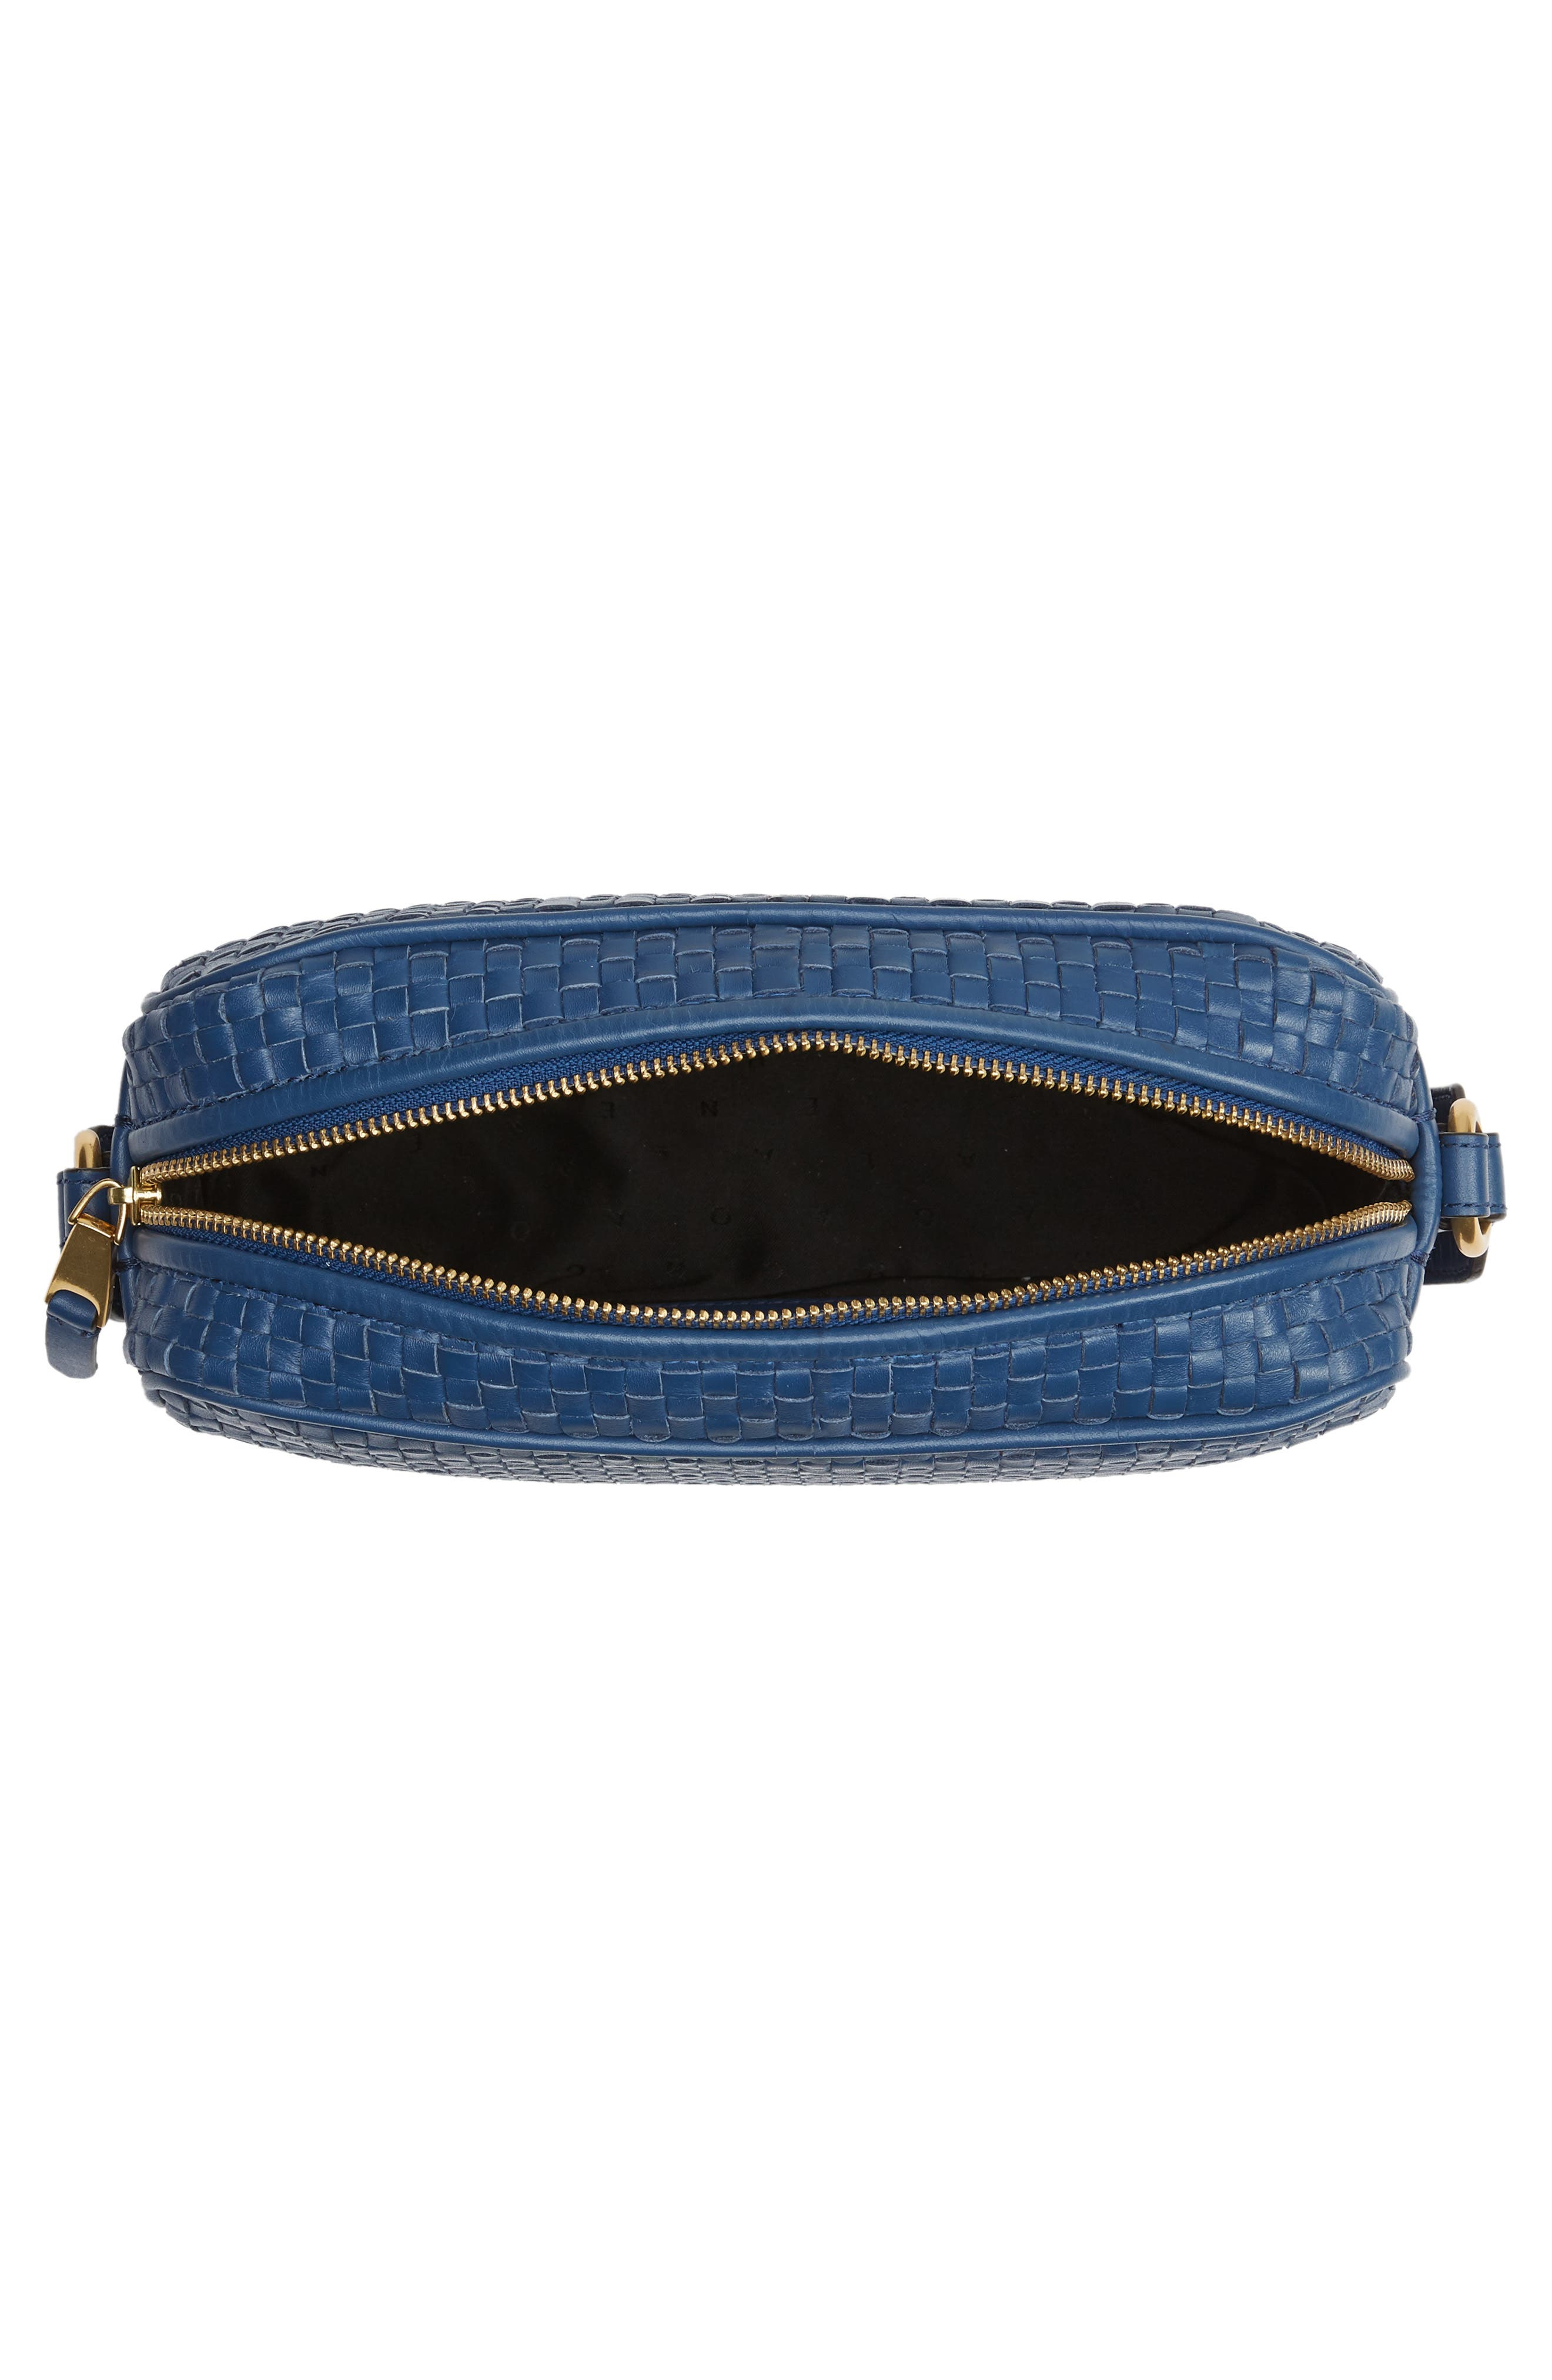 Zoe RFID Woven Leather Camera Bag,                             Alternate thumbnail 6, color,                             Navy Peony